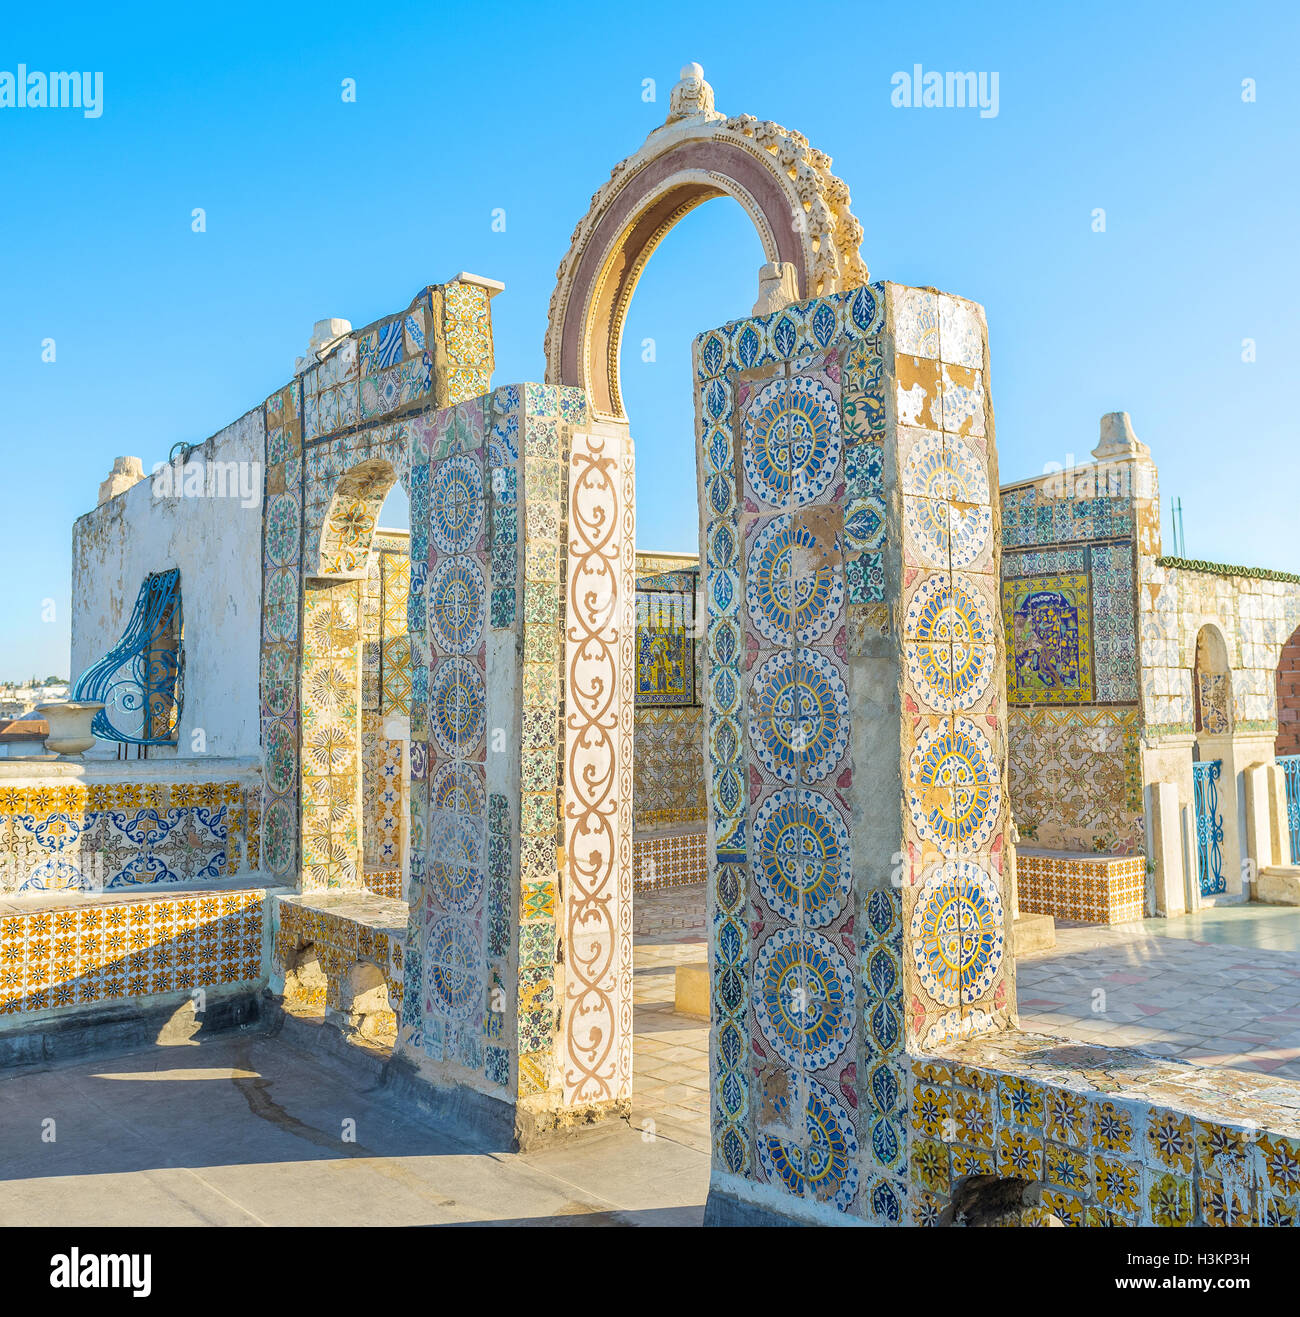 The scenic ruins covered with glazed tiles on the roof of the mansion in Medina of Tunis, Tunisia. - Stock Image